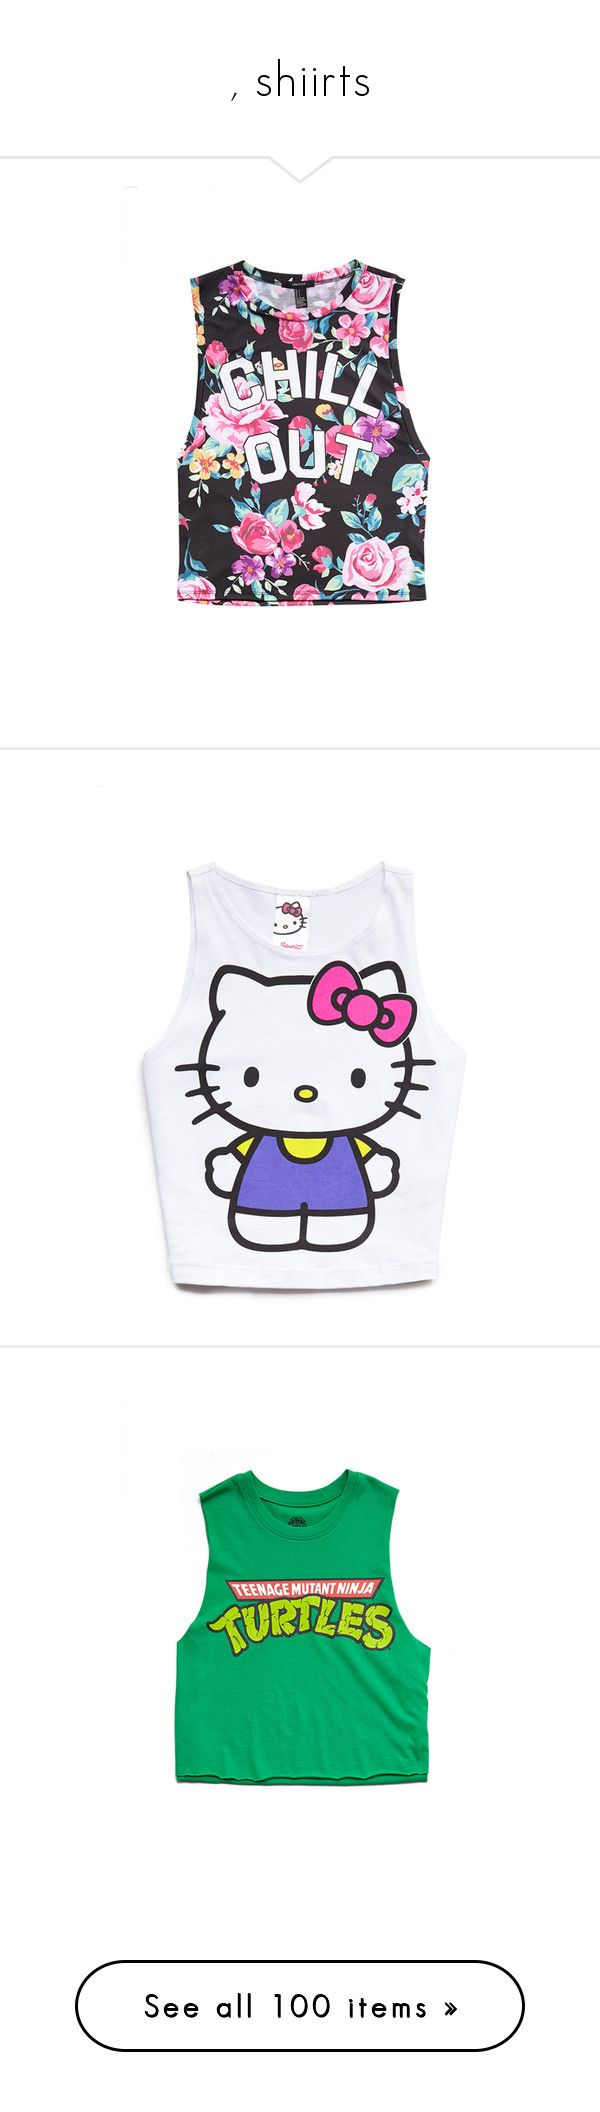 Design your own hello kitty t-shirt - Shiirts By Lipstickk Junkiee Liked On Polyvore Featuring Tops Shirts Muscle T Shirtst Shirt Graphic Designlayering Shirtshello Kittygraphicscrop